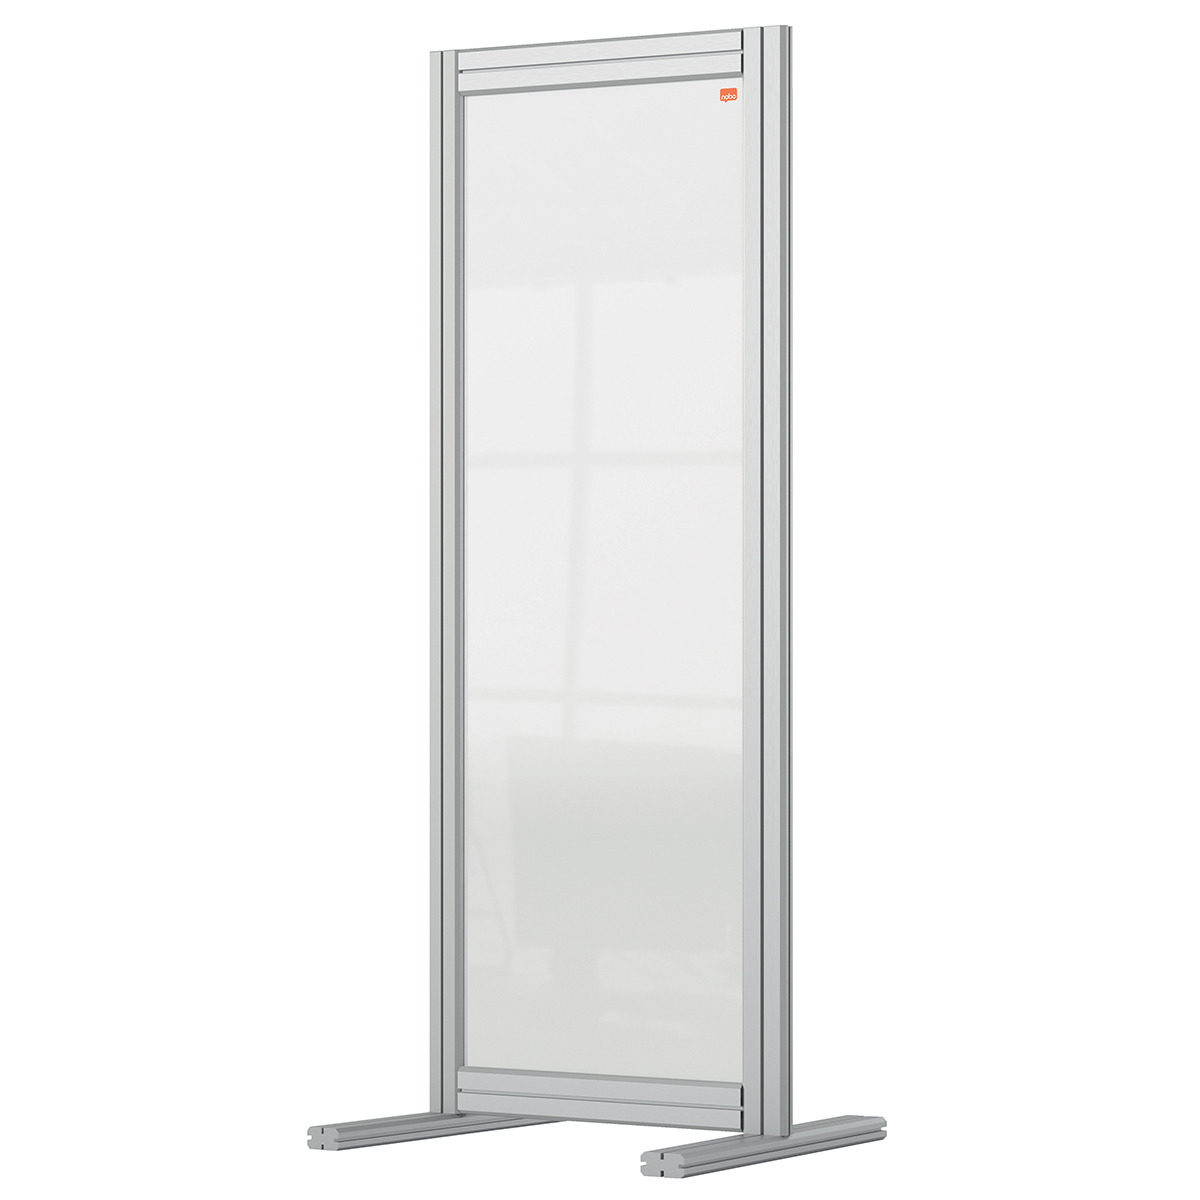 Nobo 1915494 Premium Plus Desk Divider 400x1000mm Acrylic